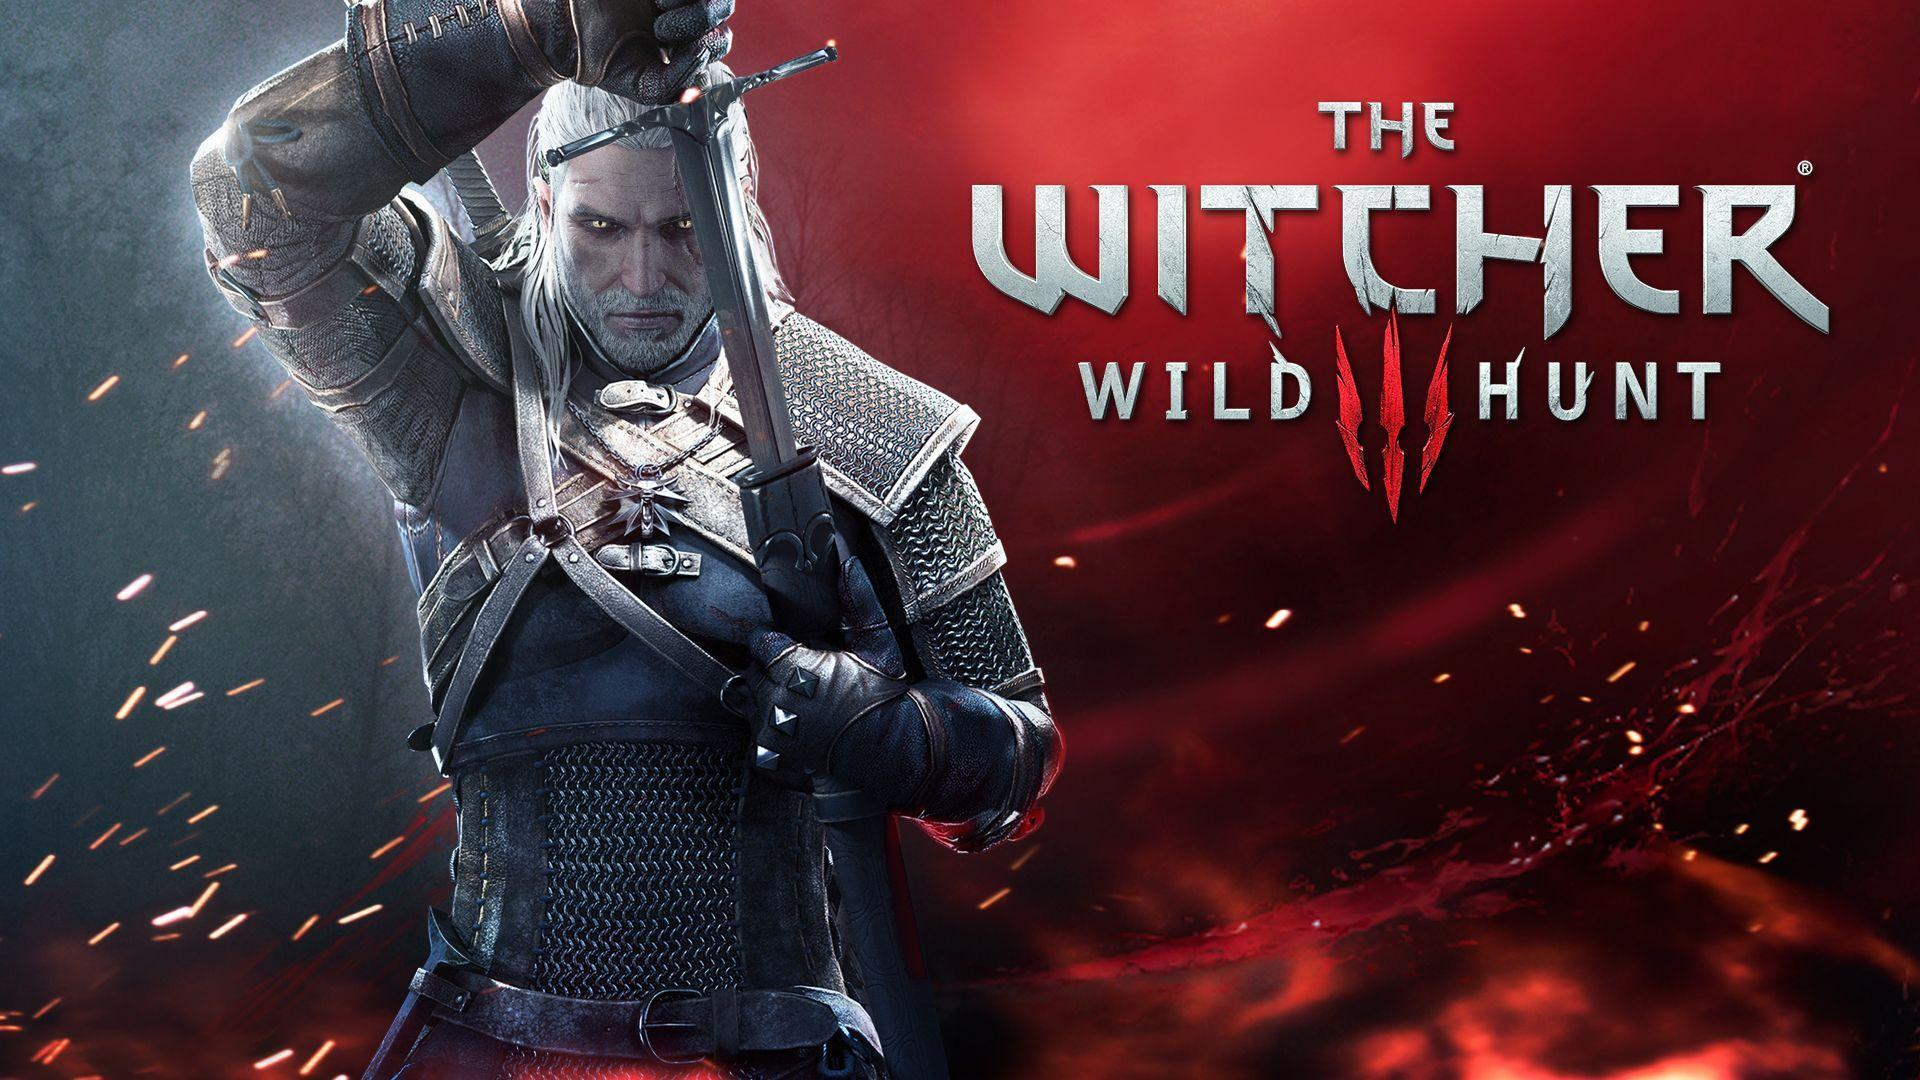 Fiend – The Witcher 3 Wild Hunt wallpapers – wallpapers free download